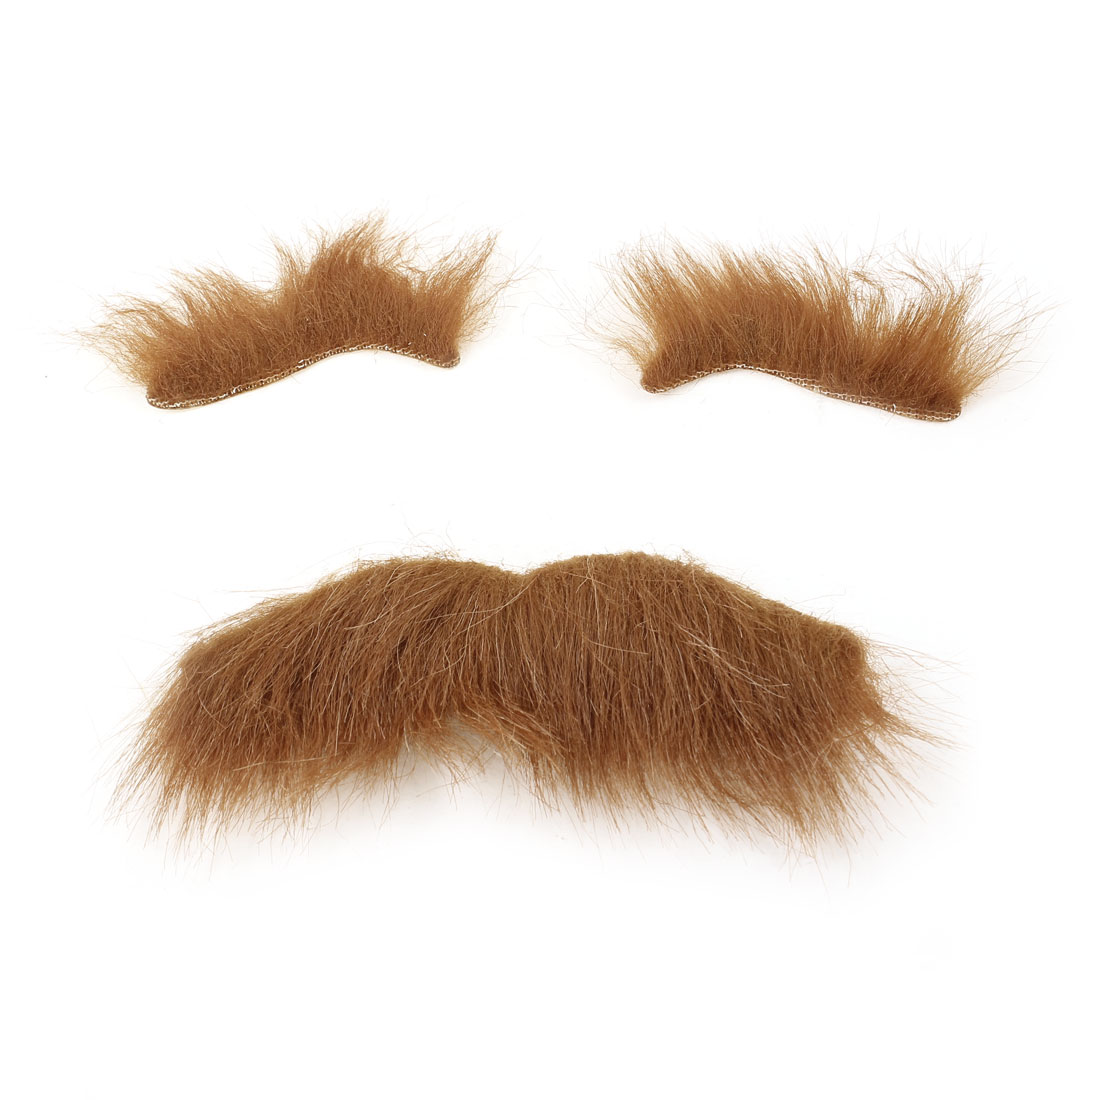 Fancy Dress Ball Halloween Cosplay Adhesived Faux Fur Funny Fake Mustache Eyebrow Set Brown